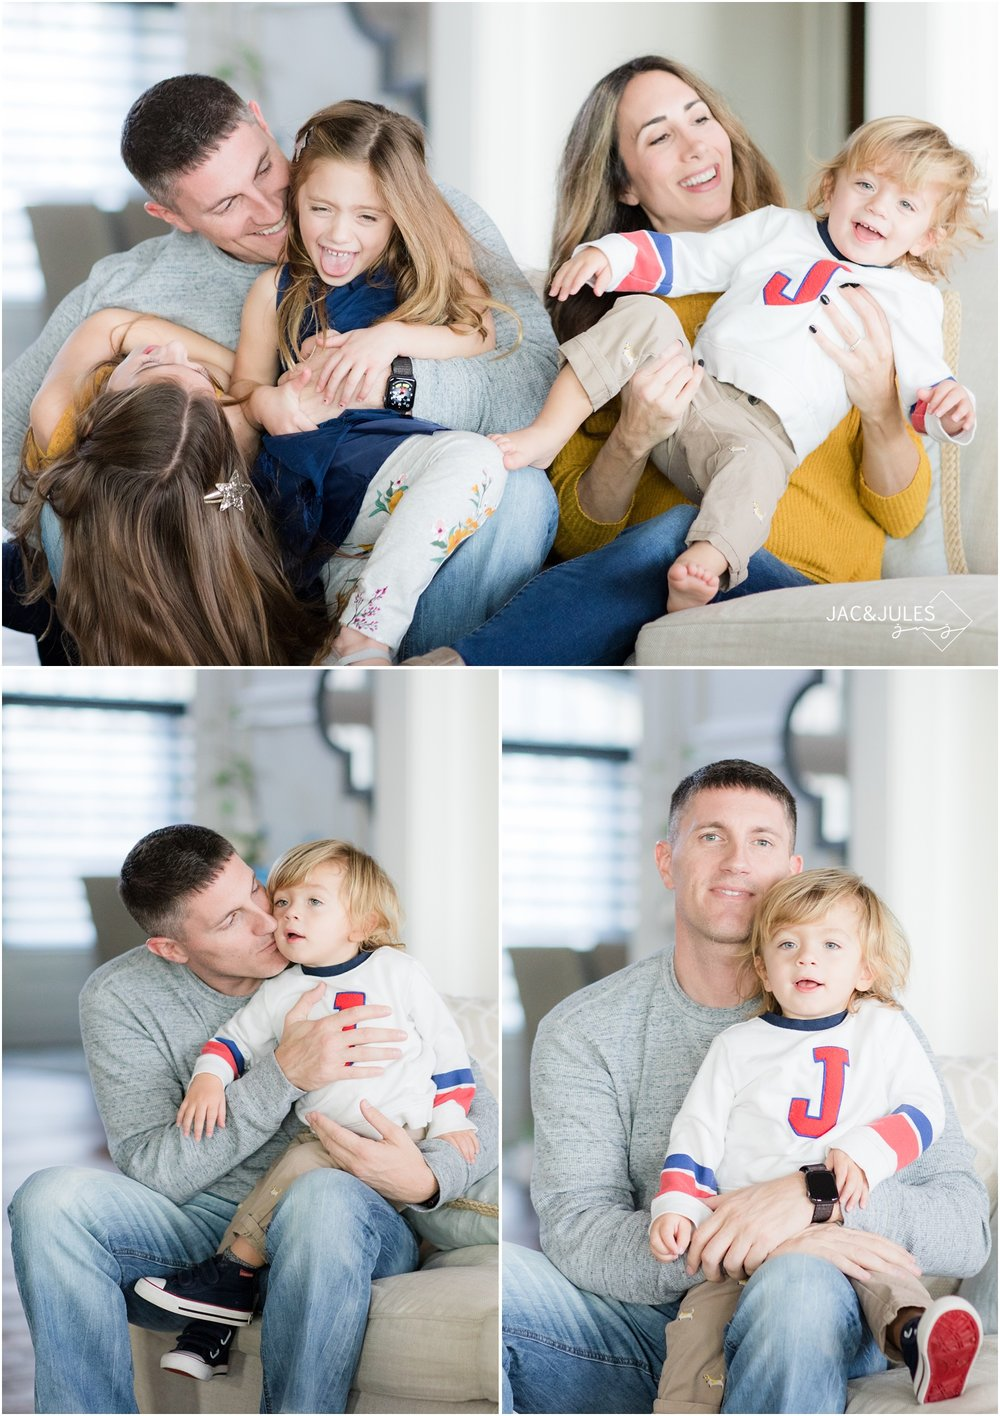 playful photos of a family on their couch at home in Toms River, NJ.